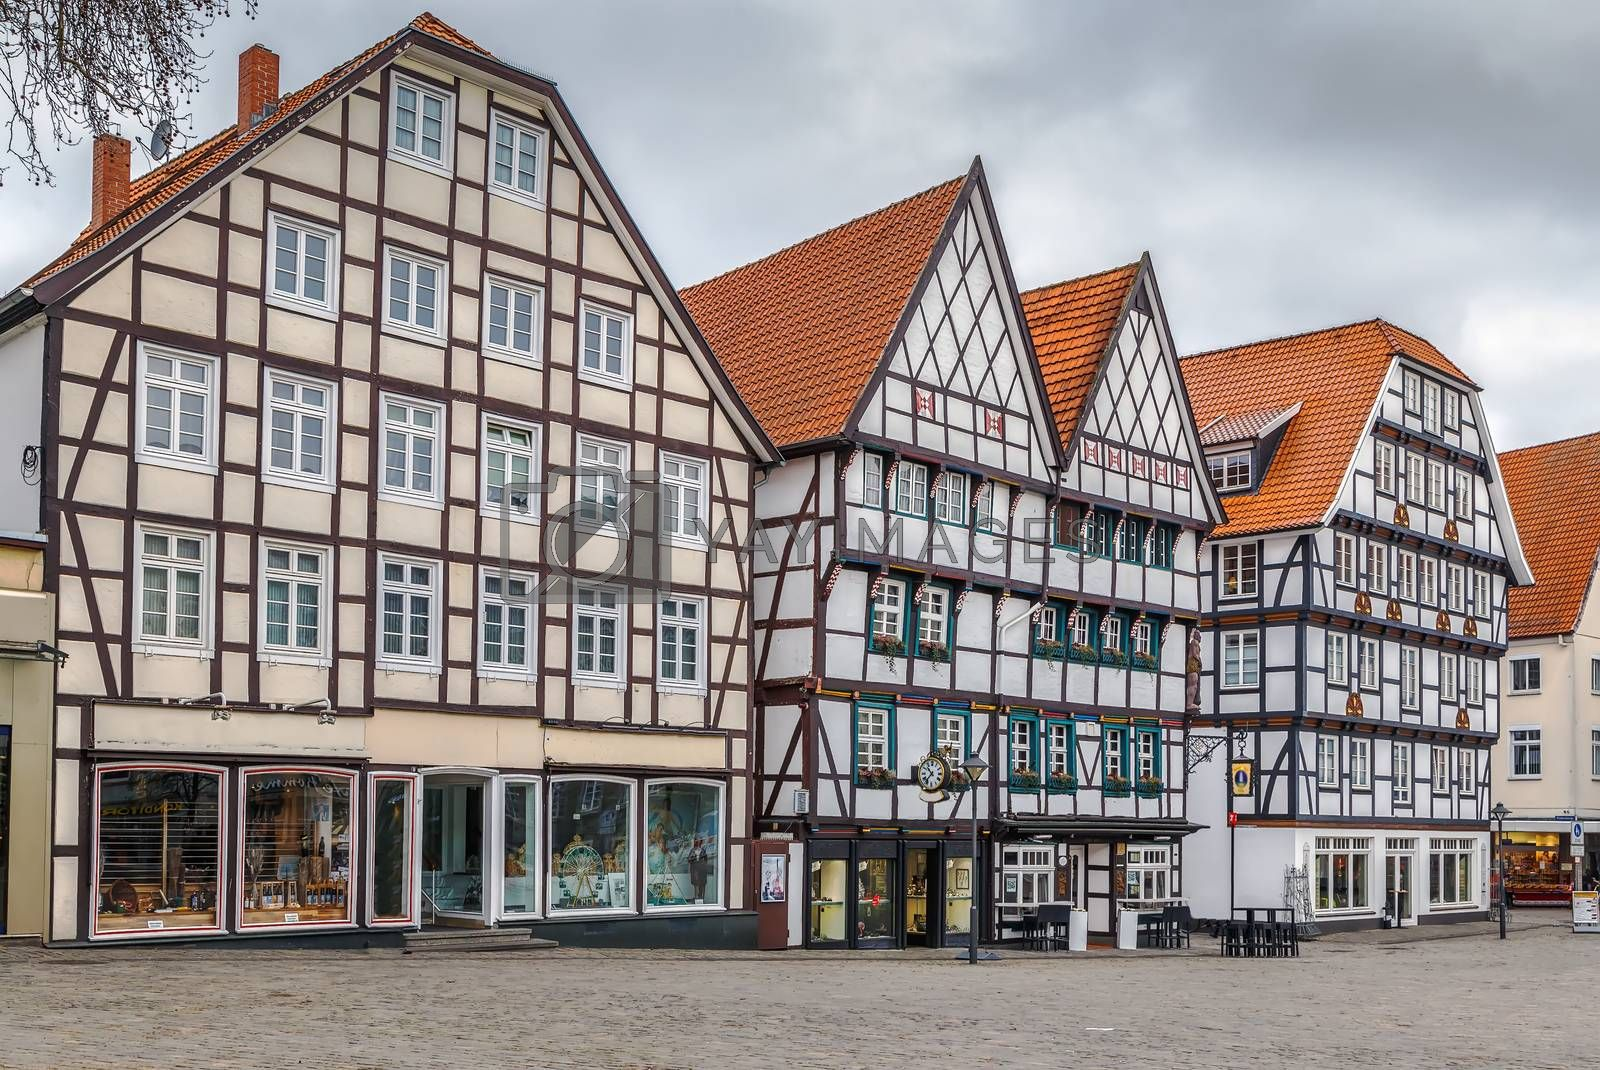 Royalty free image of Market square, Soest, Germany by borisb17